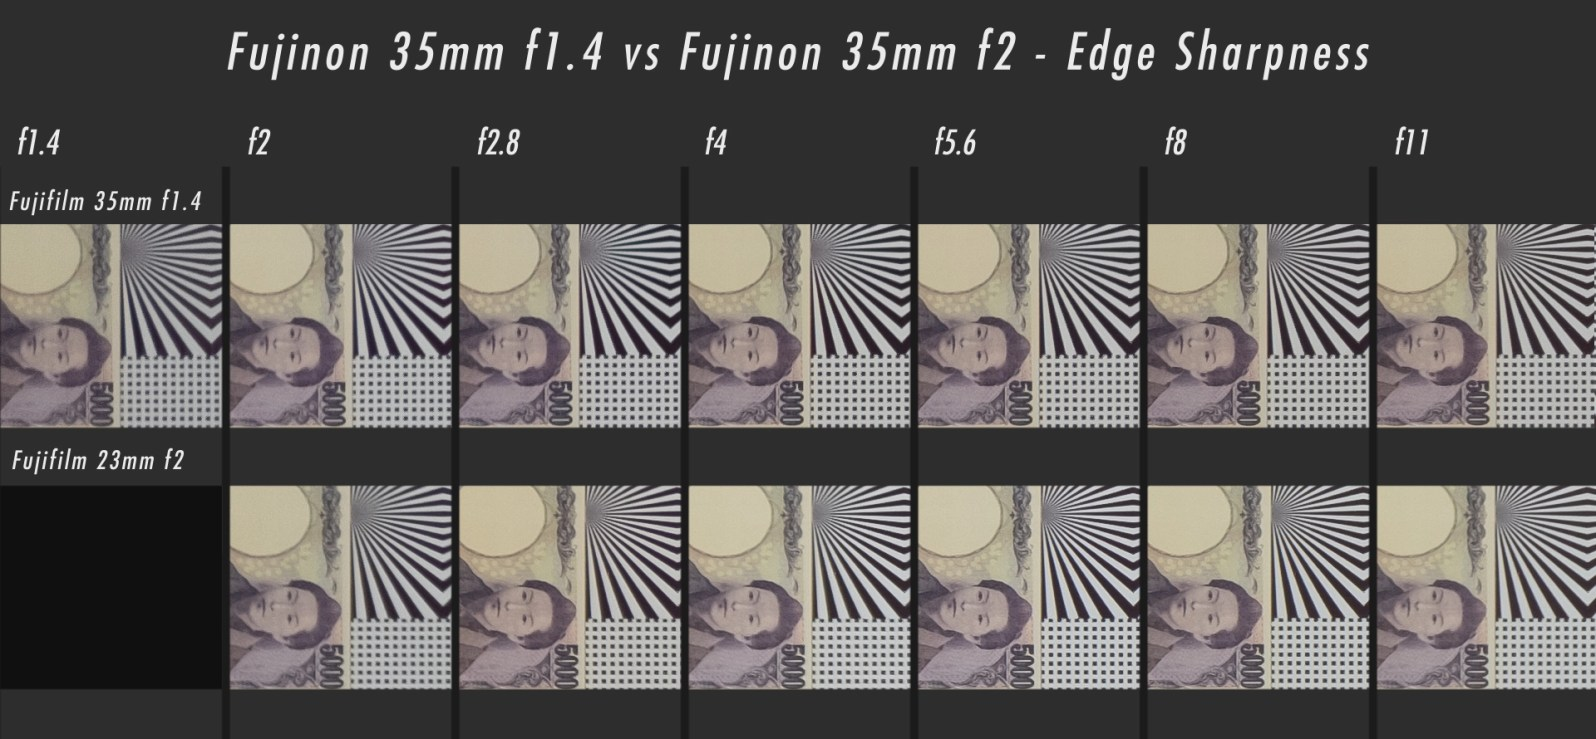 35mm f1.4 vs 35mm f2 Sharpness Edge Comparison